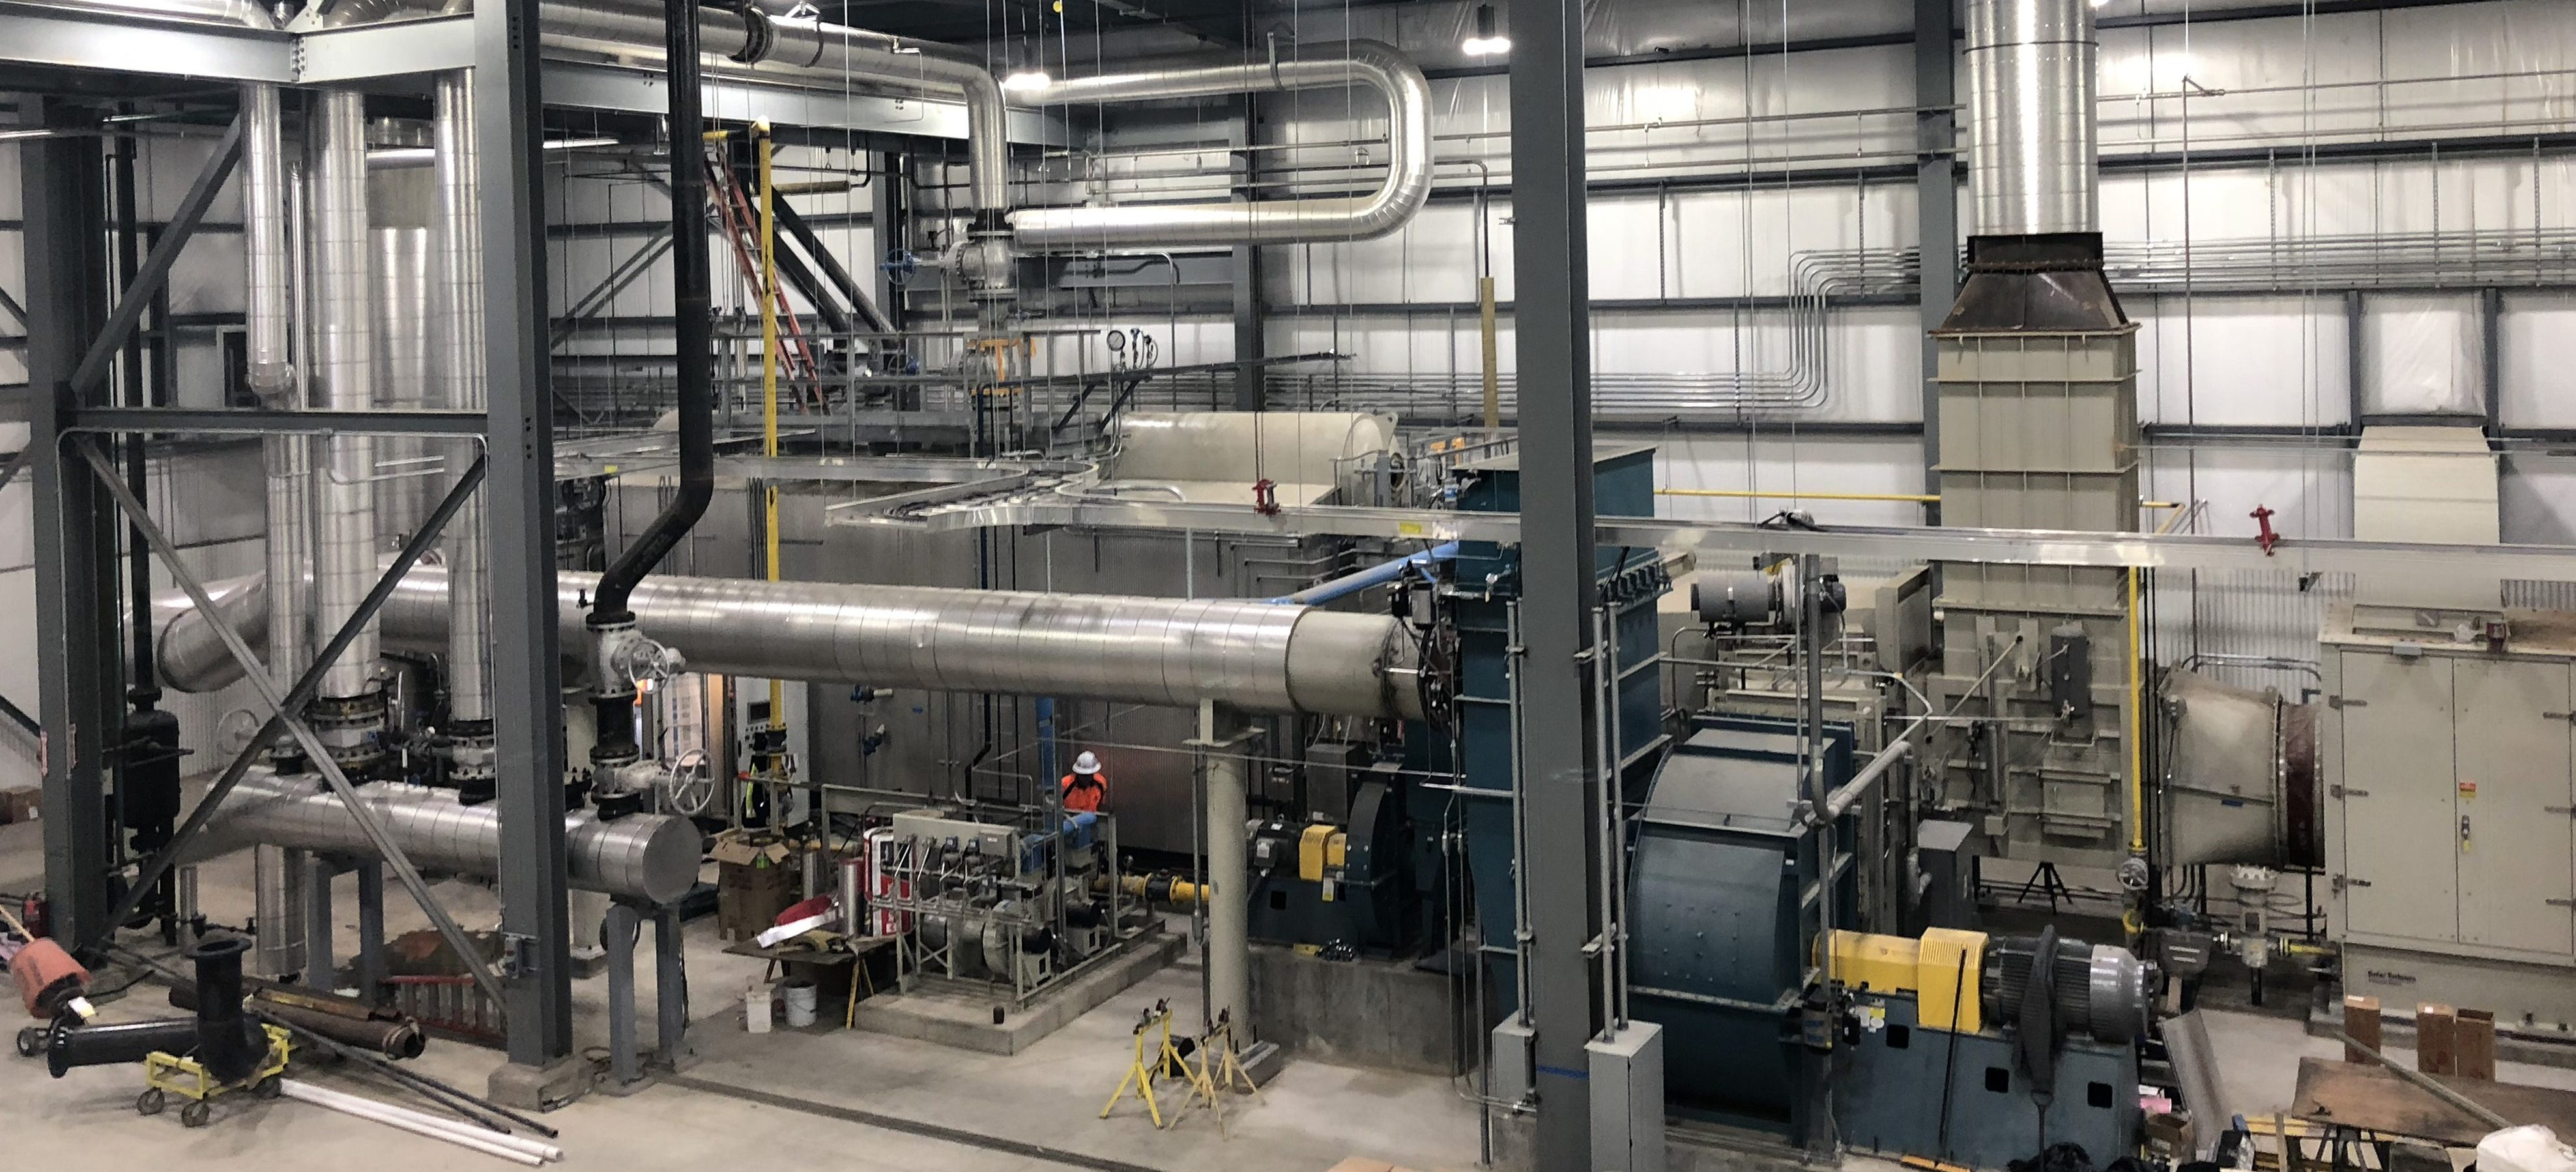 Bushmills Ethanol New Combined Heat and Power Plant